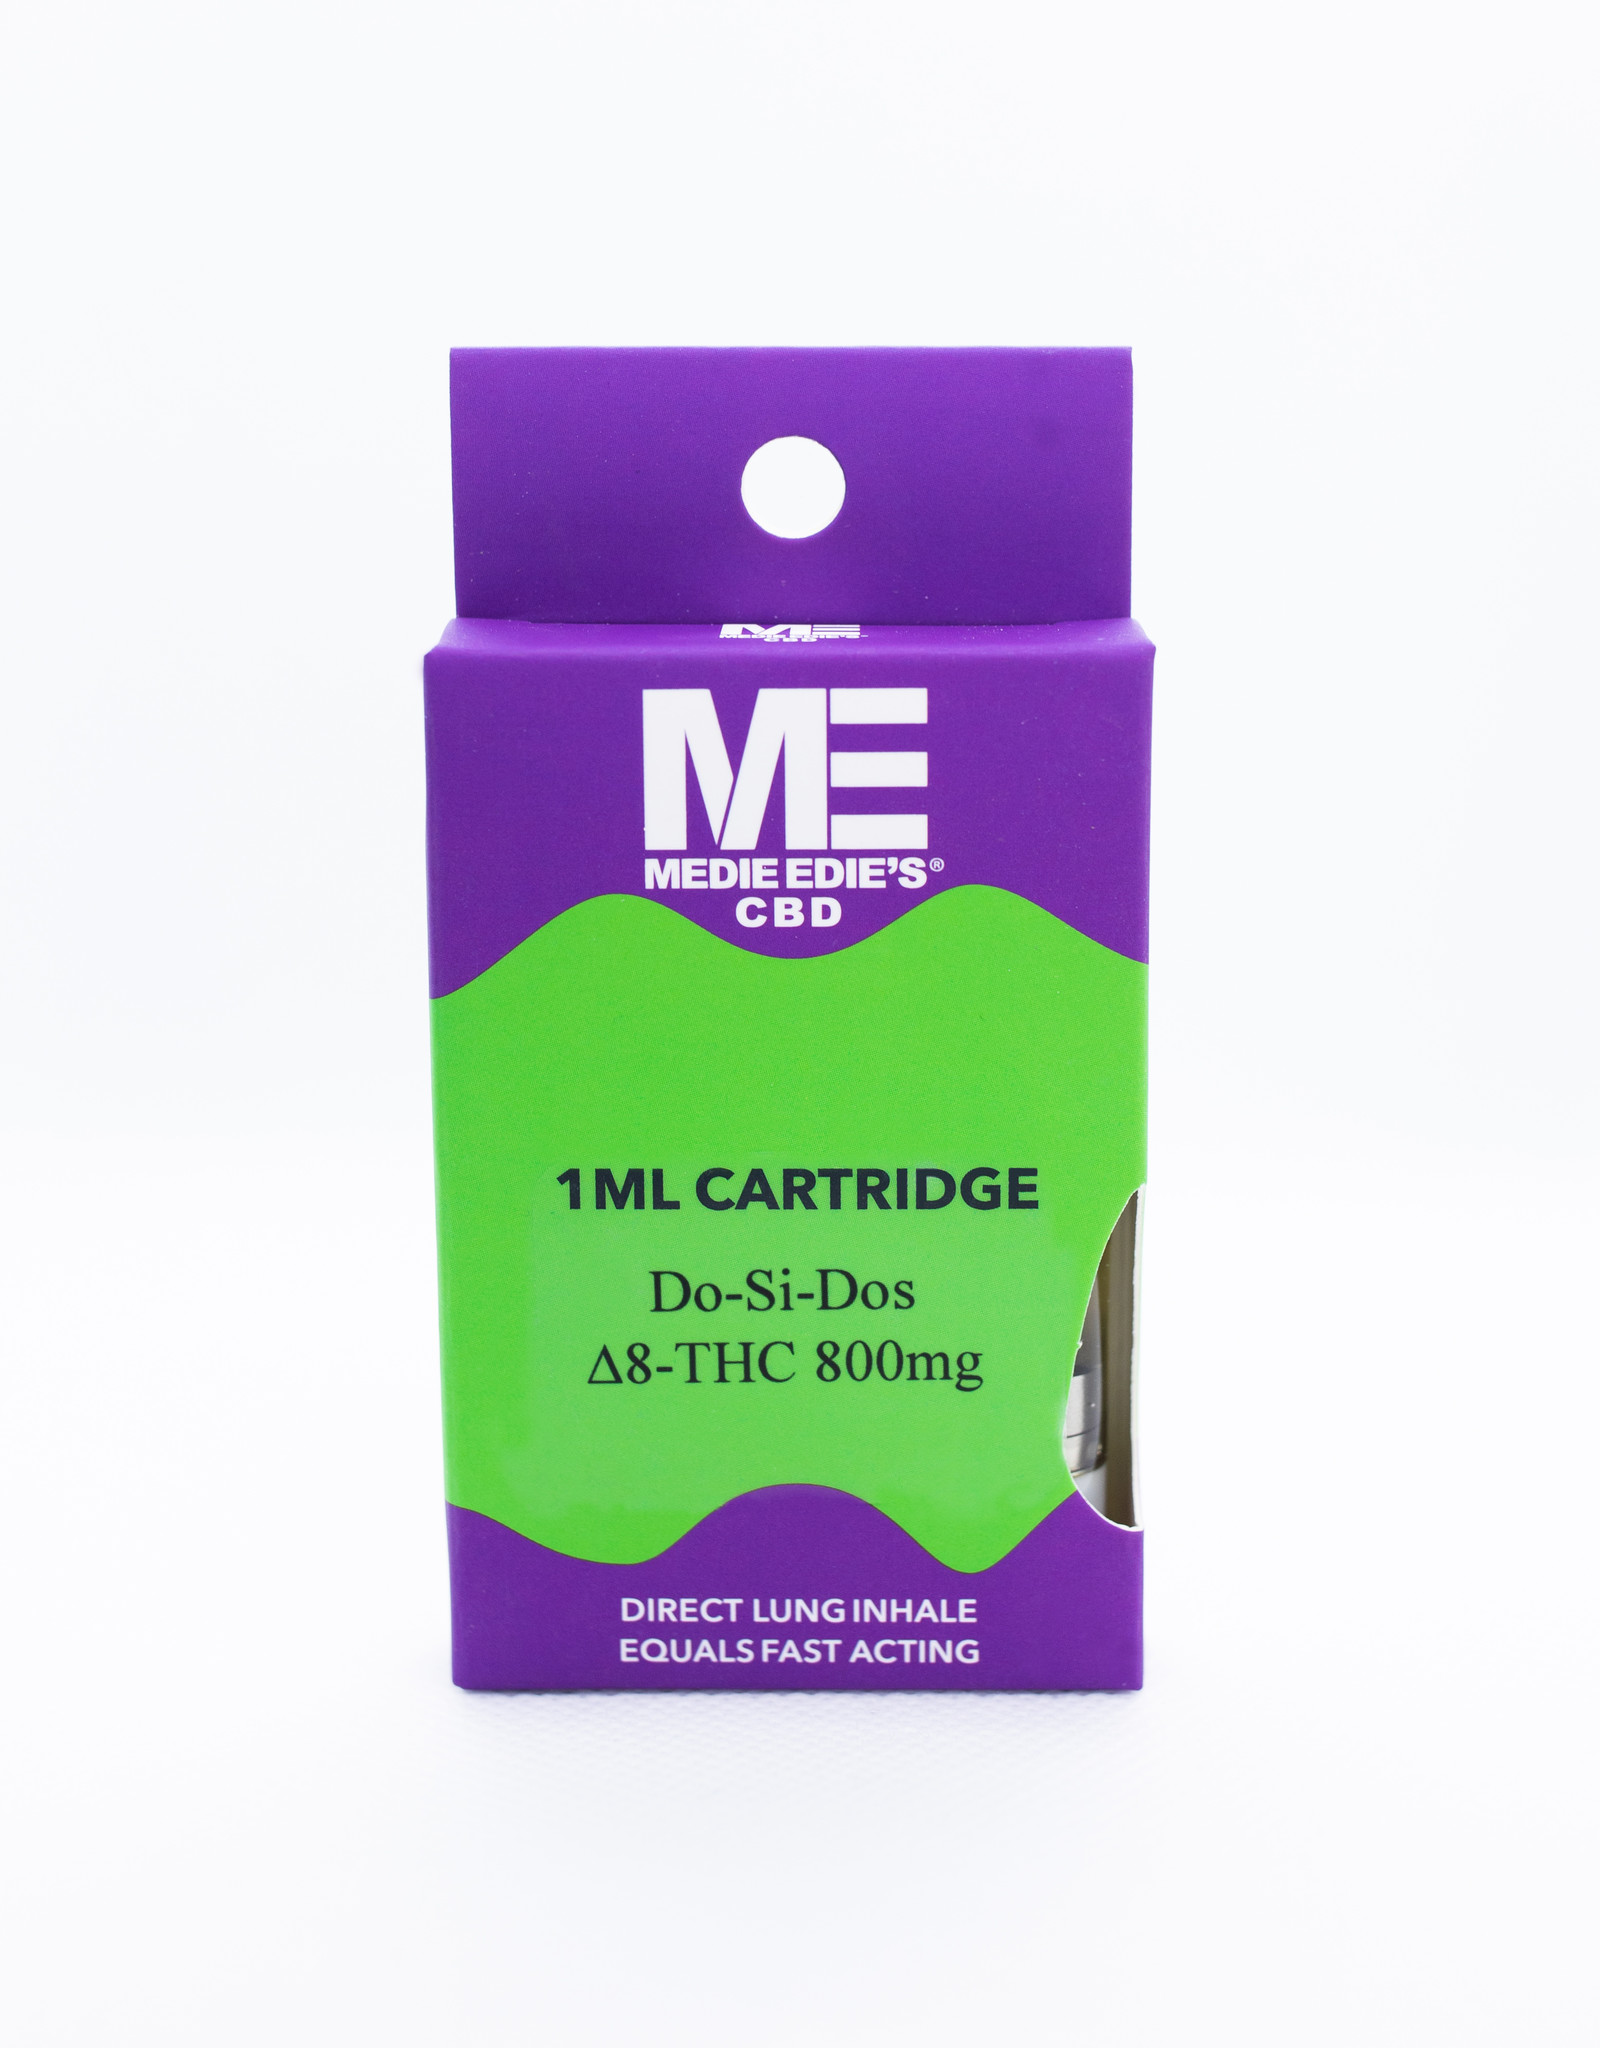 Medie Edie's Medie Edie's 1ml Delta-8 Vape Cartridge Dos-Si-Do -  800mg